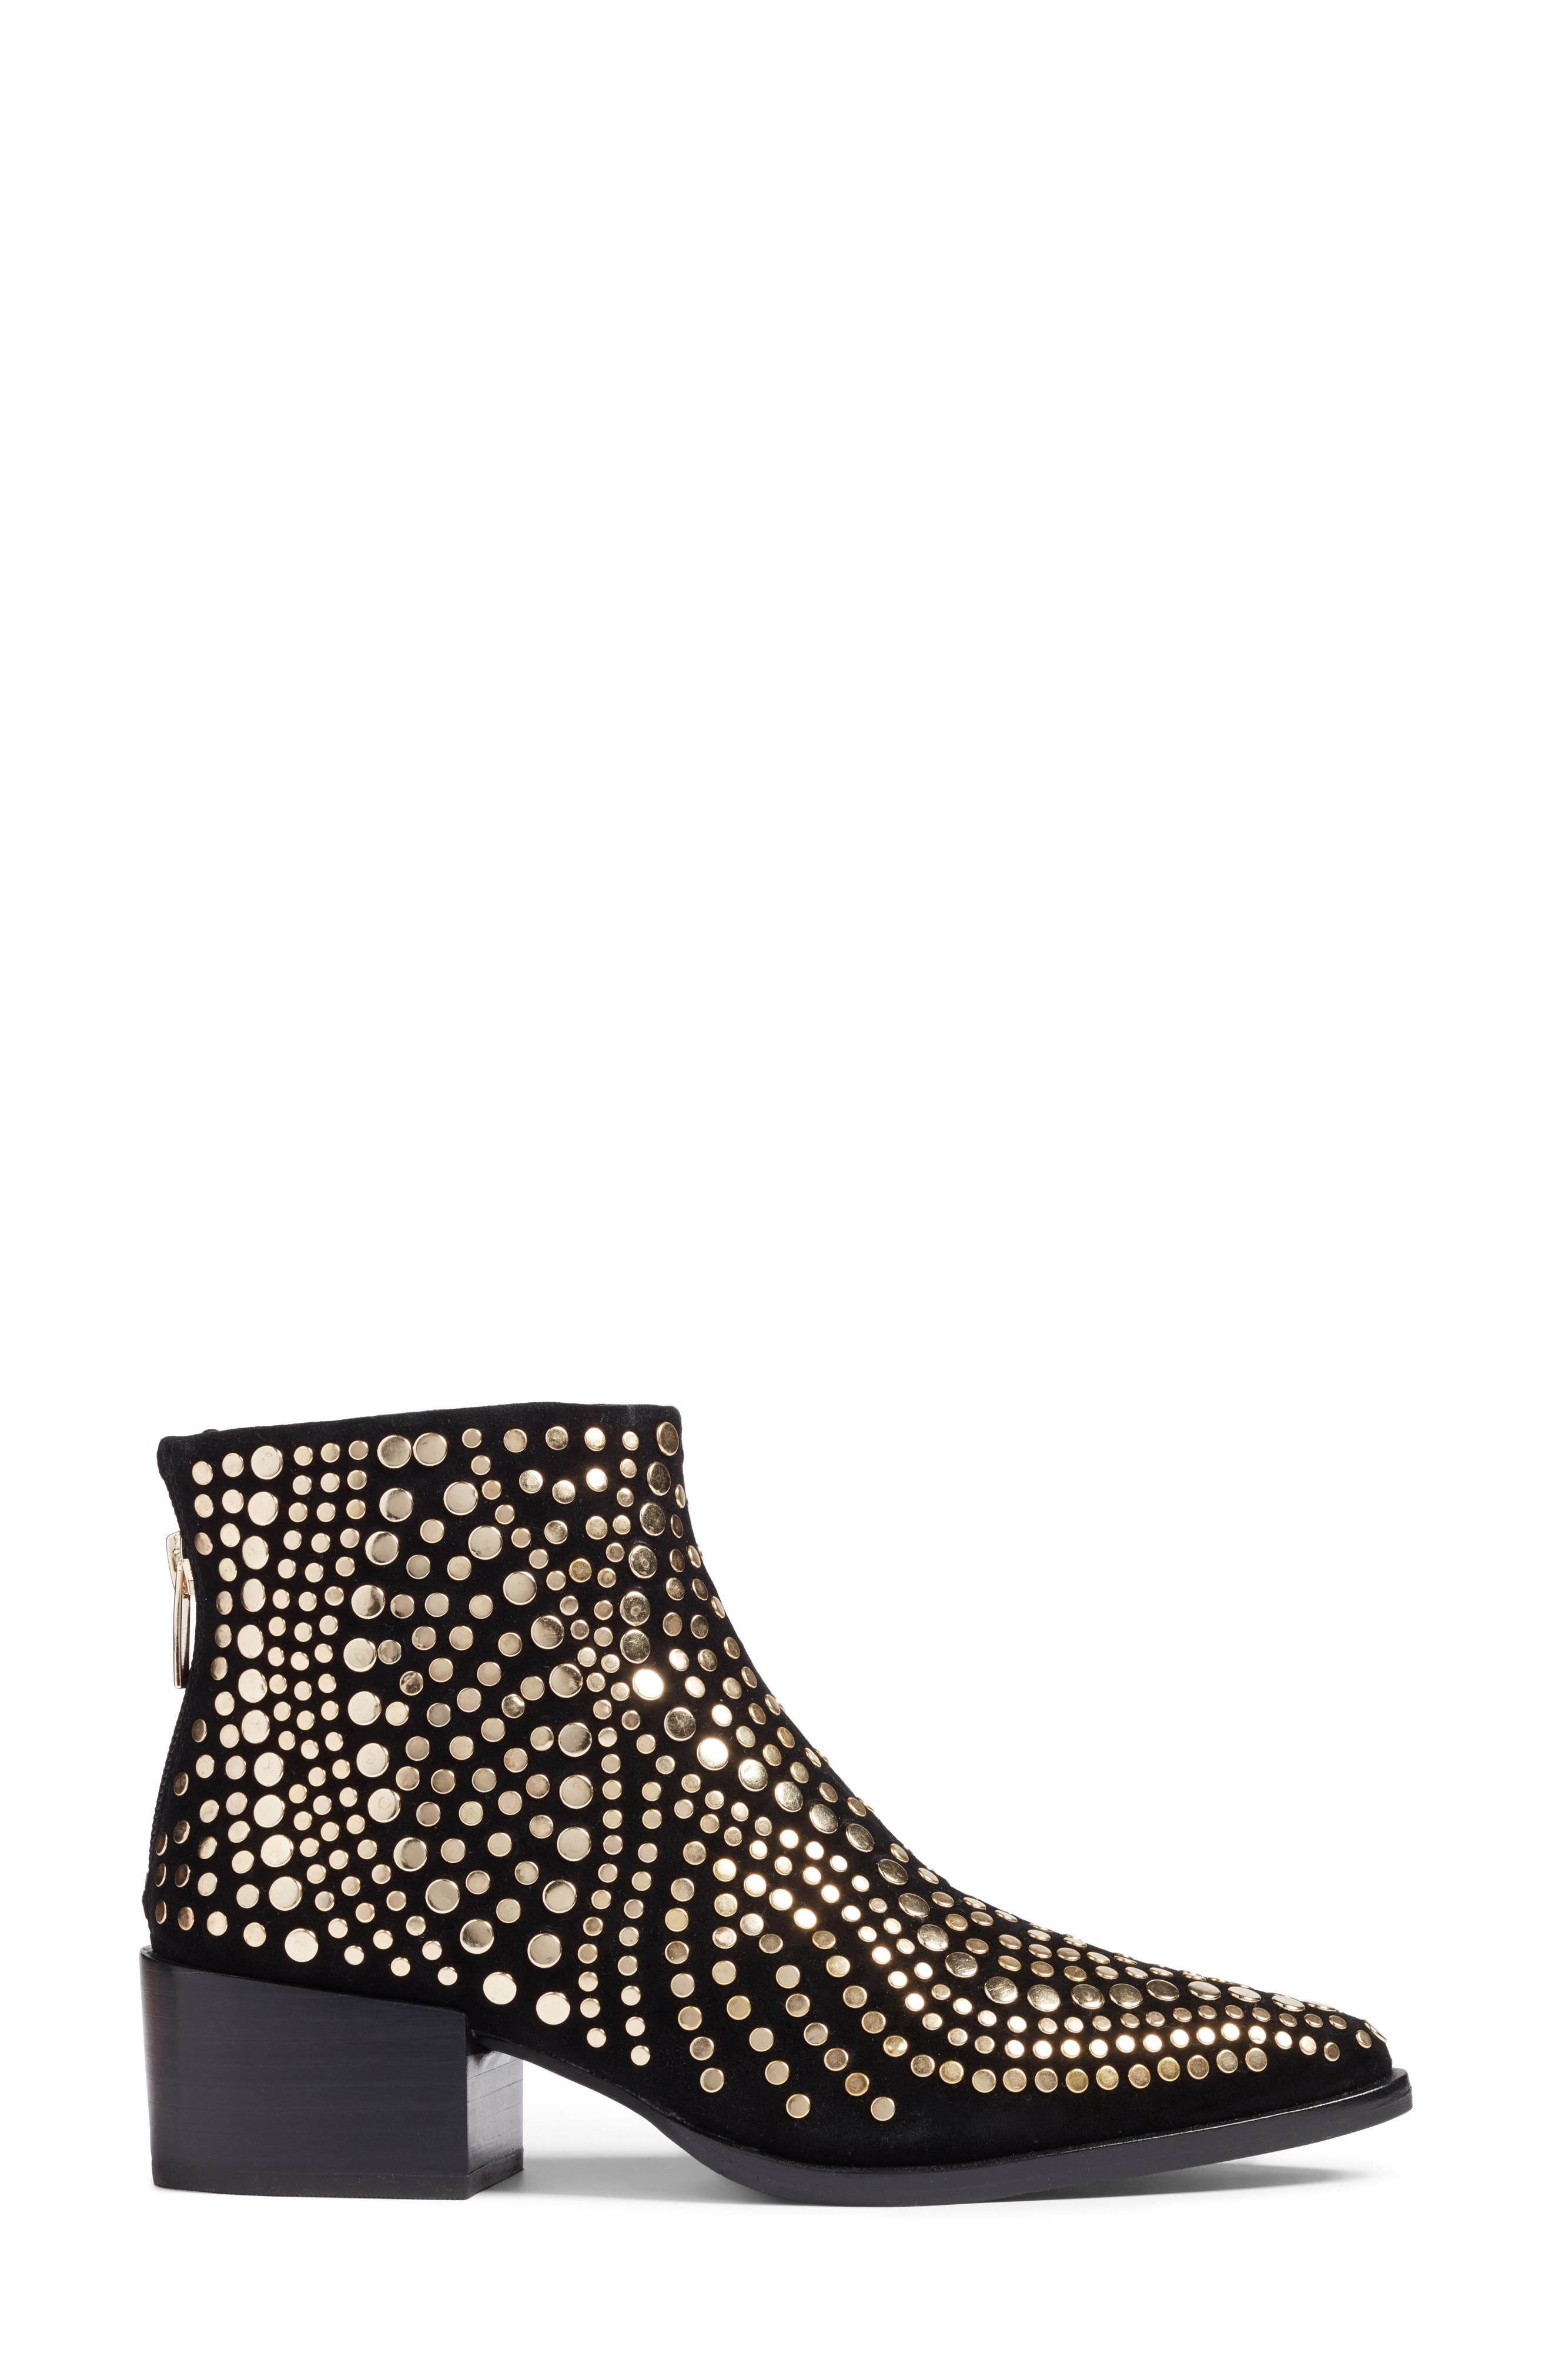 Alternate Image 3  - Vince Camuto Edenny Studded Pointy Toe Bootie (Women)